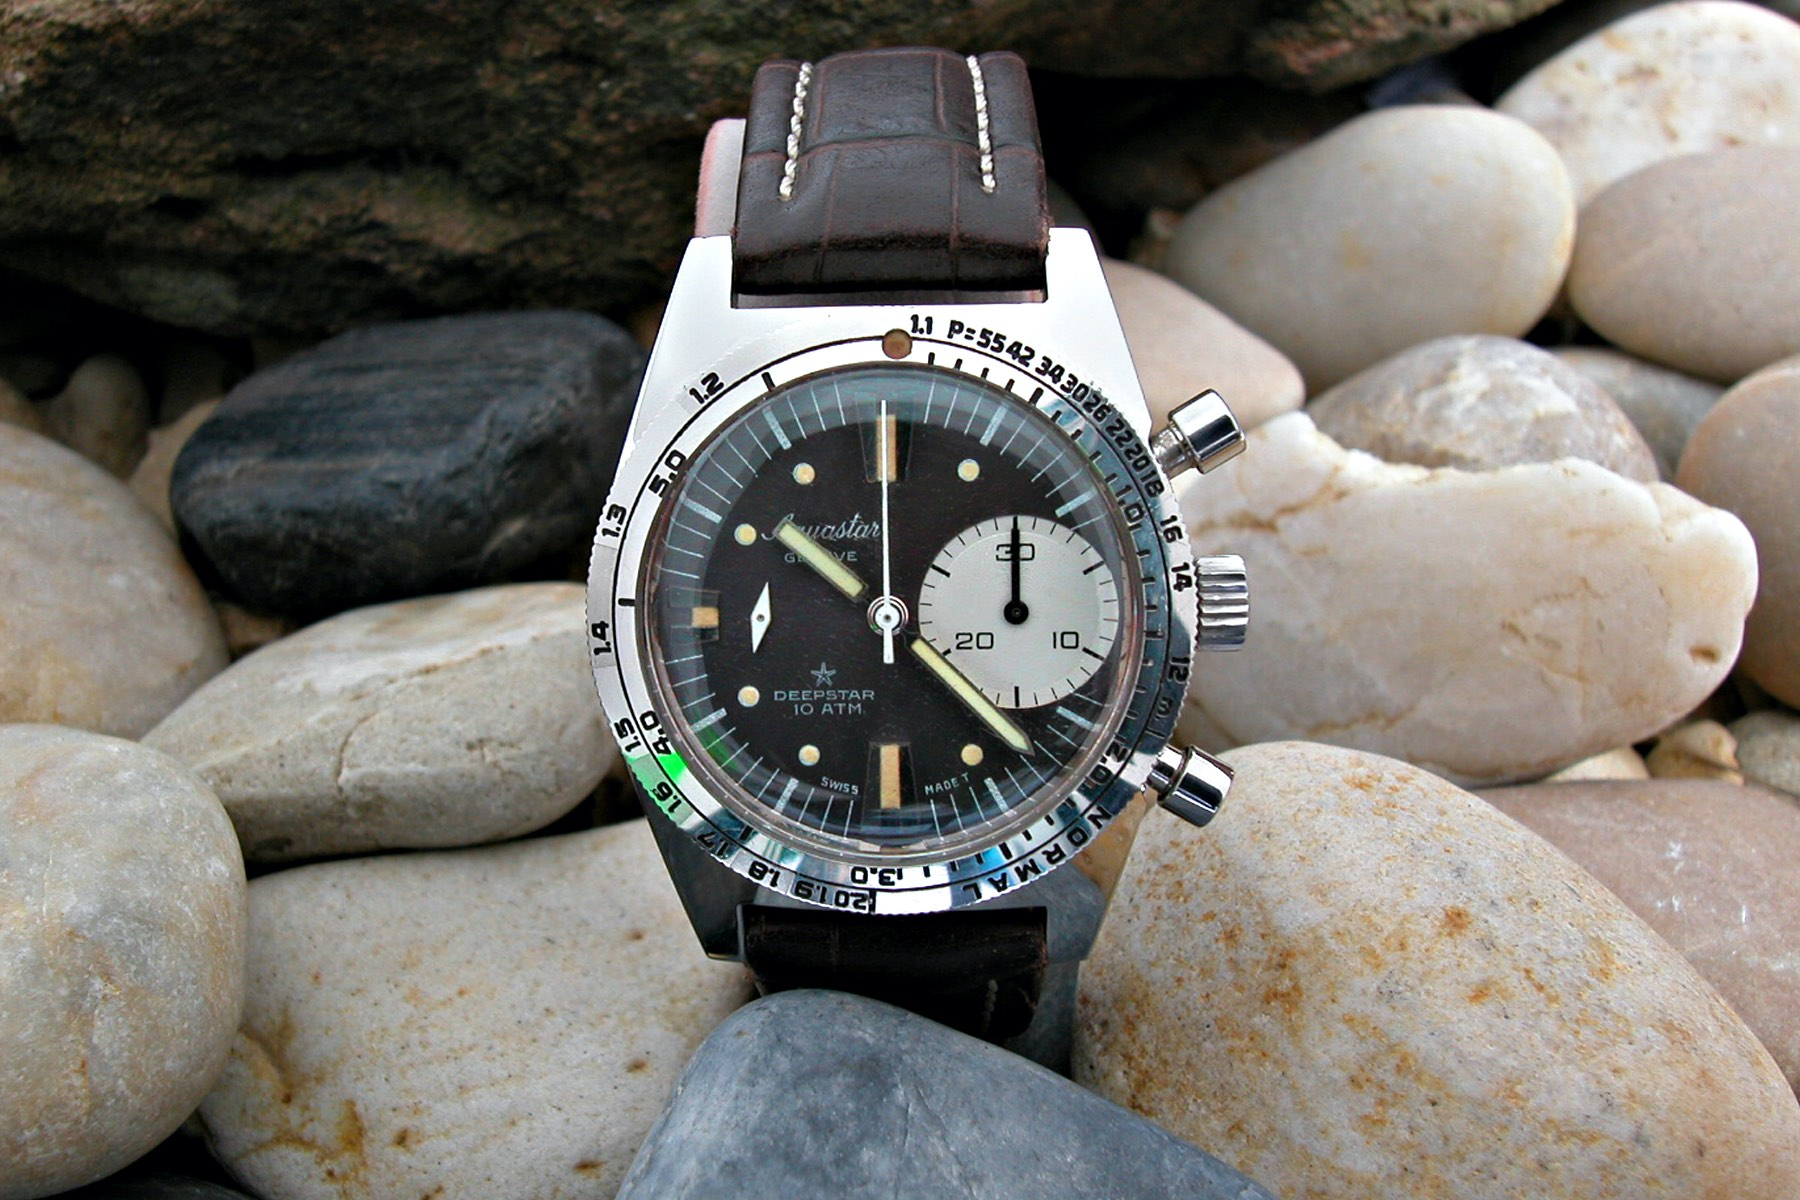 The Vintage Corner - The Story of Aquastar Deepstar Dive Chronograph